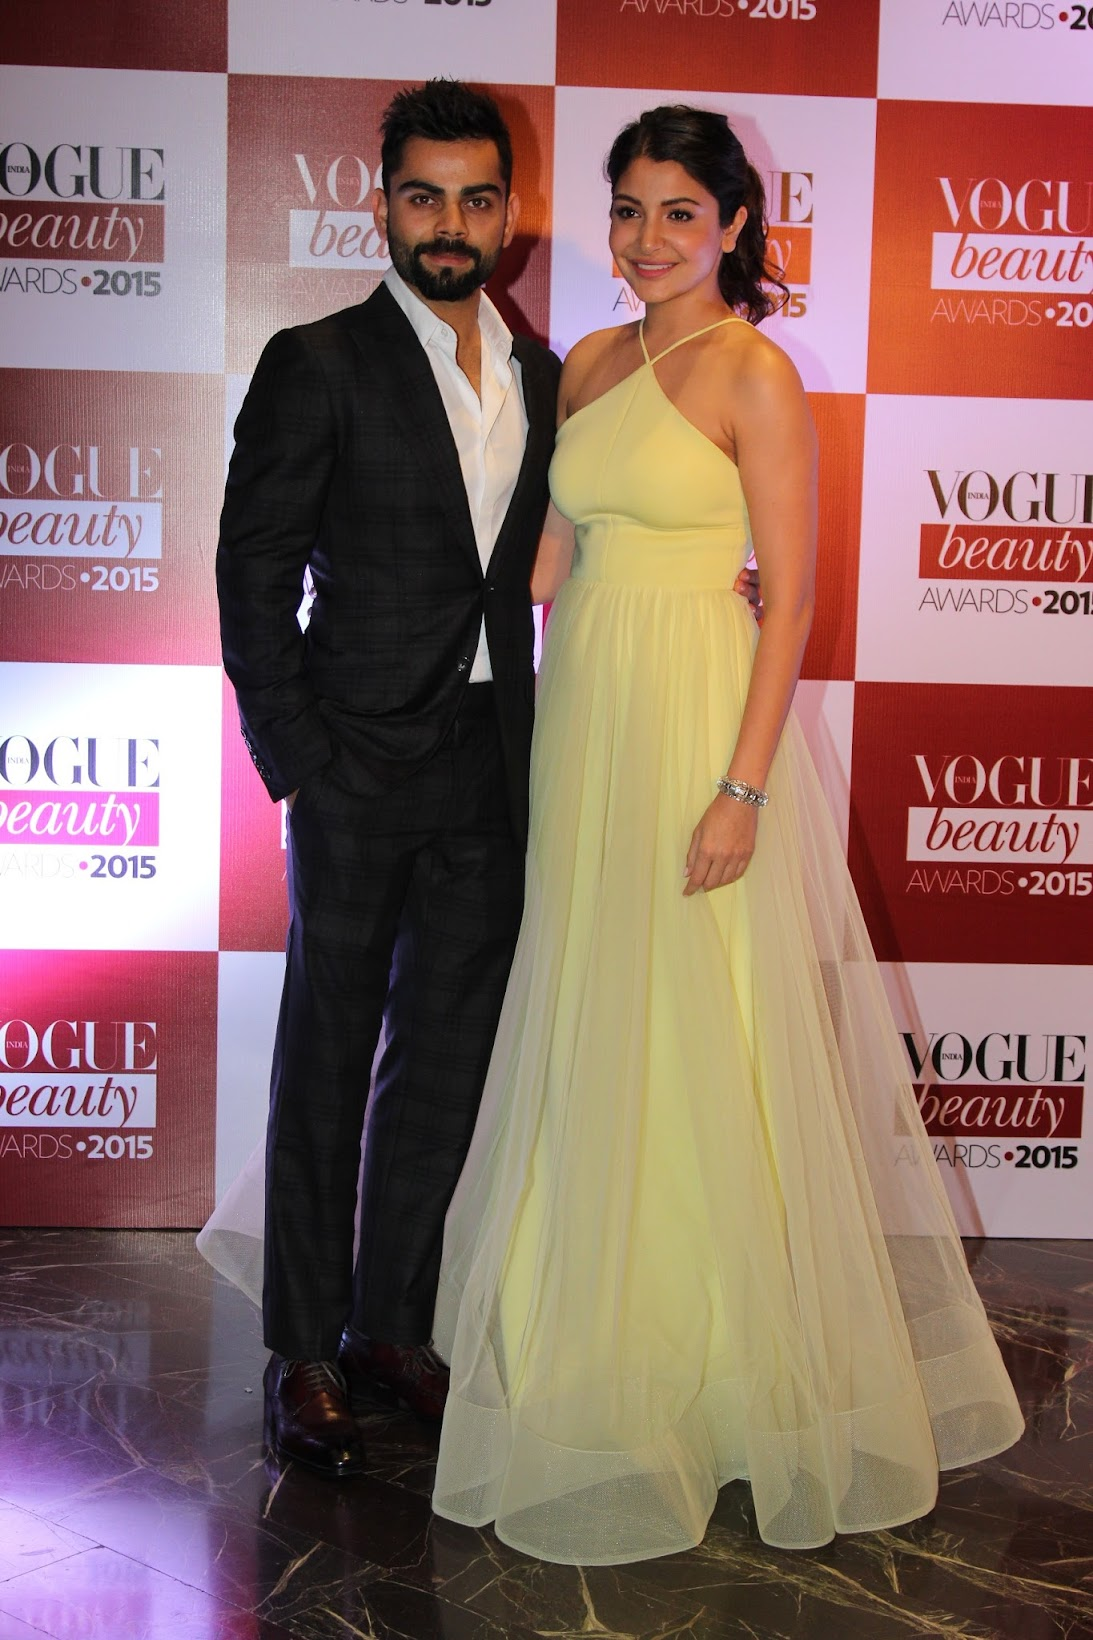 Best of Vogue India Beauty Awards 2015, Anushka sharma & Virat Kohli at the Vogue India Beauty awards